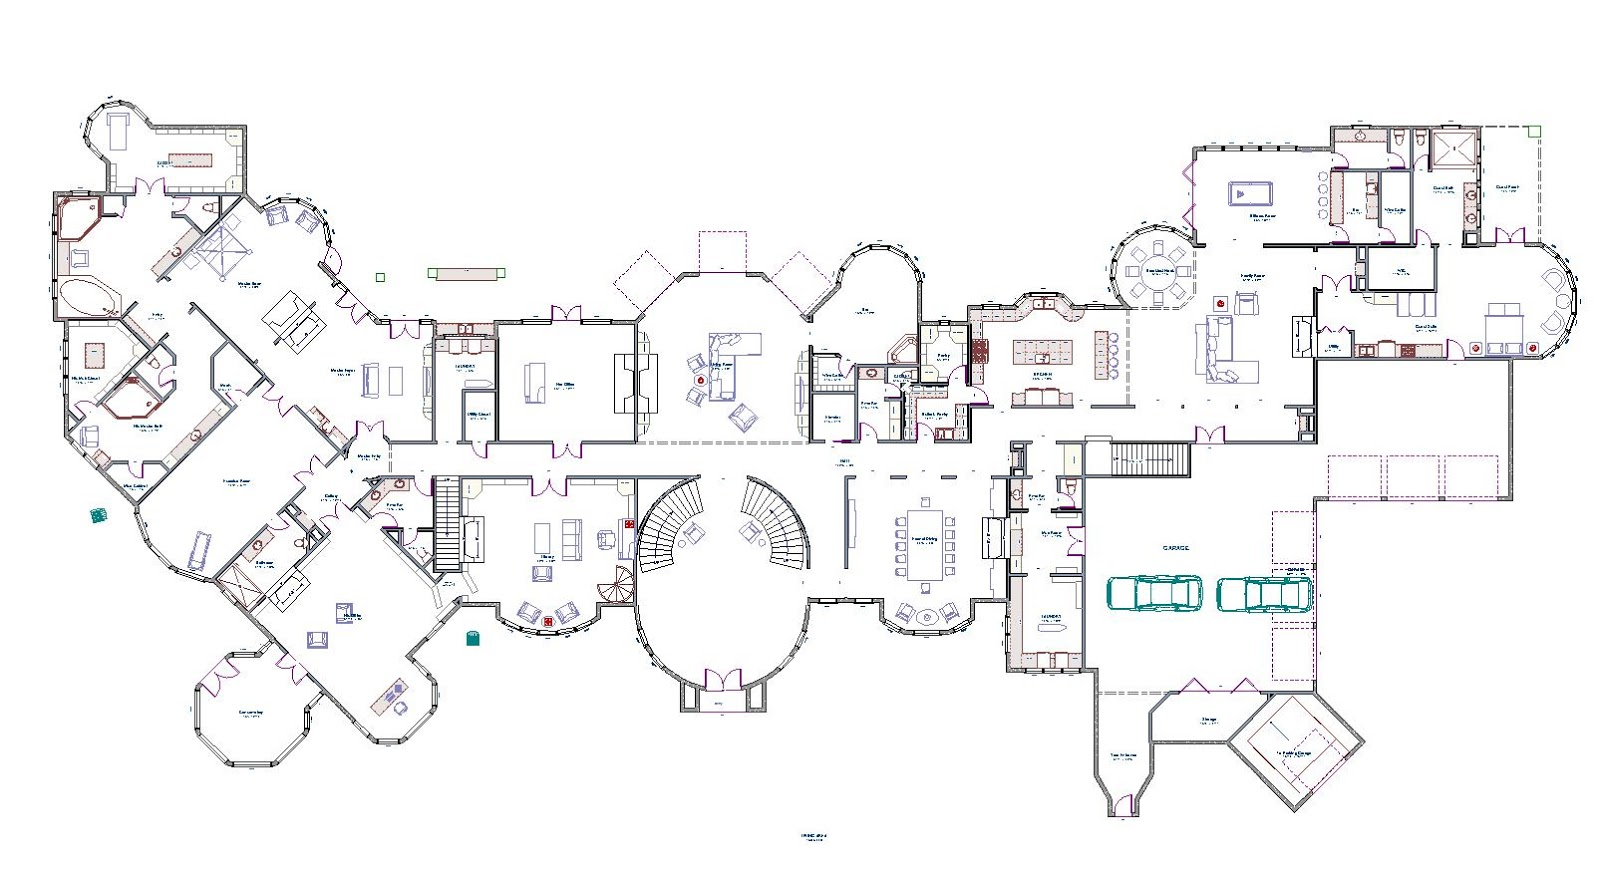 Mansions & More: Partial Floor Plans I Have Designed Part 2